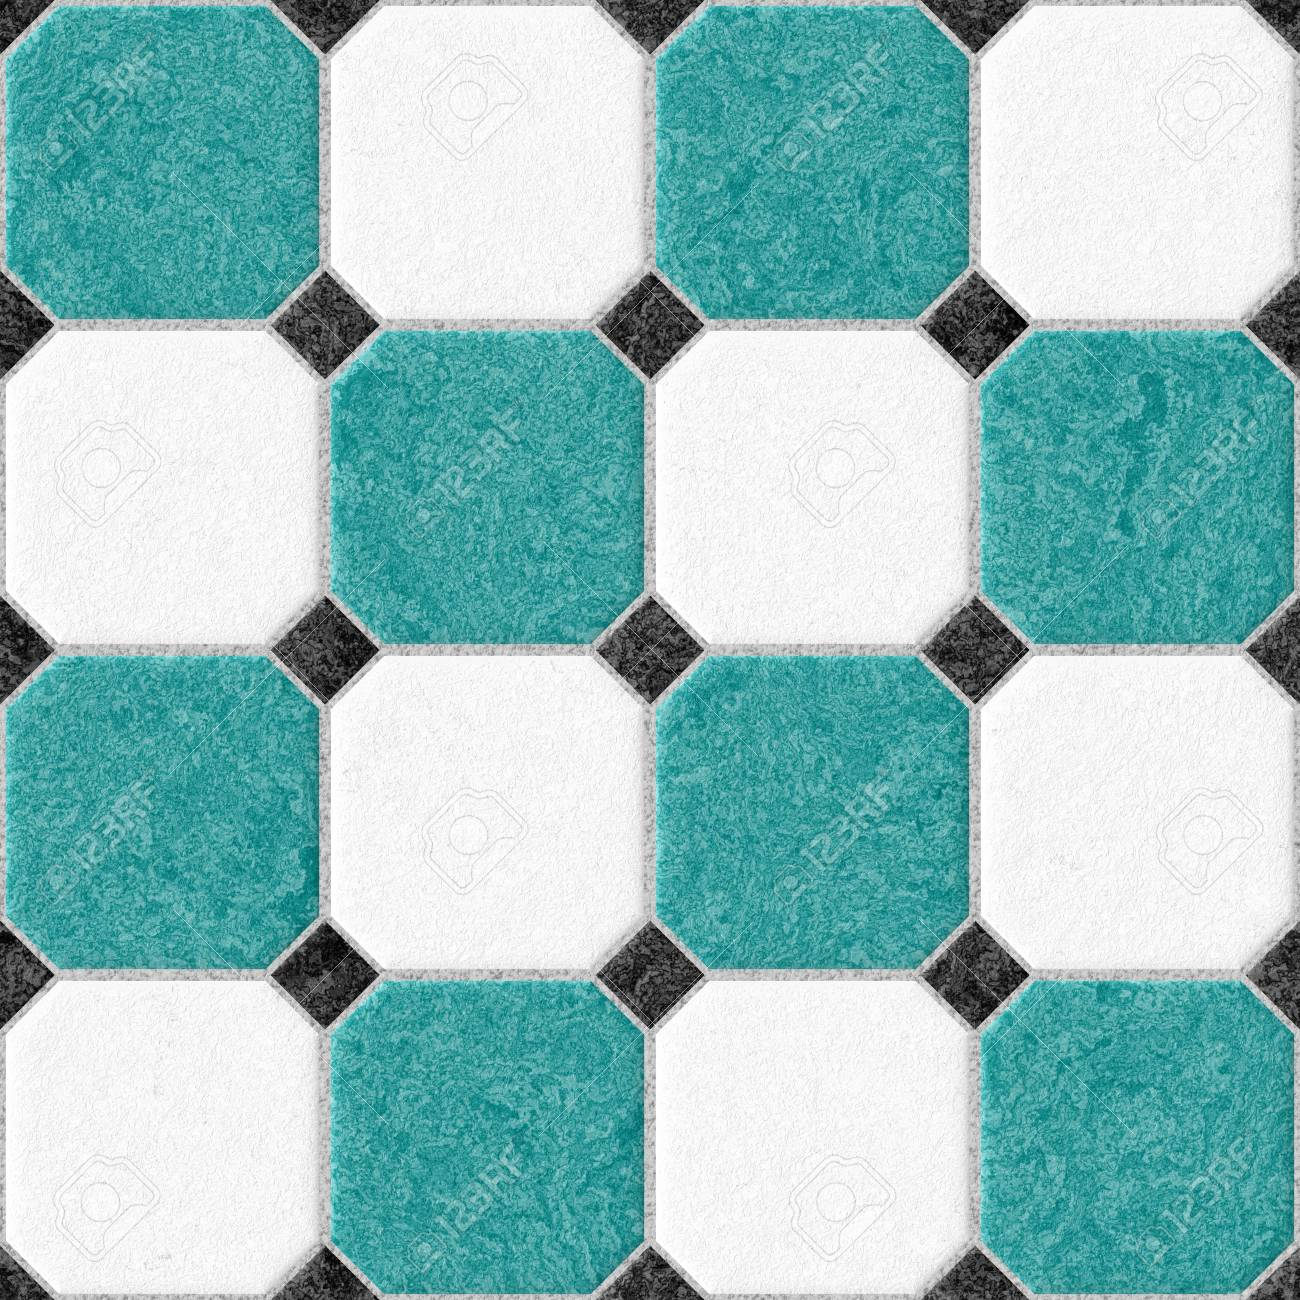 Marble Square Floor Tiles With Black Rhombs And Light Gray Gap ...